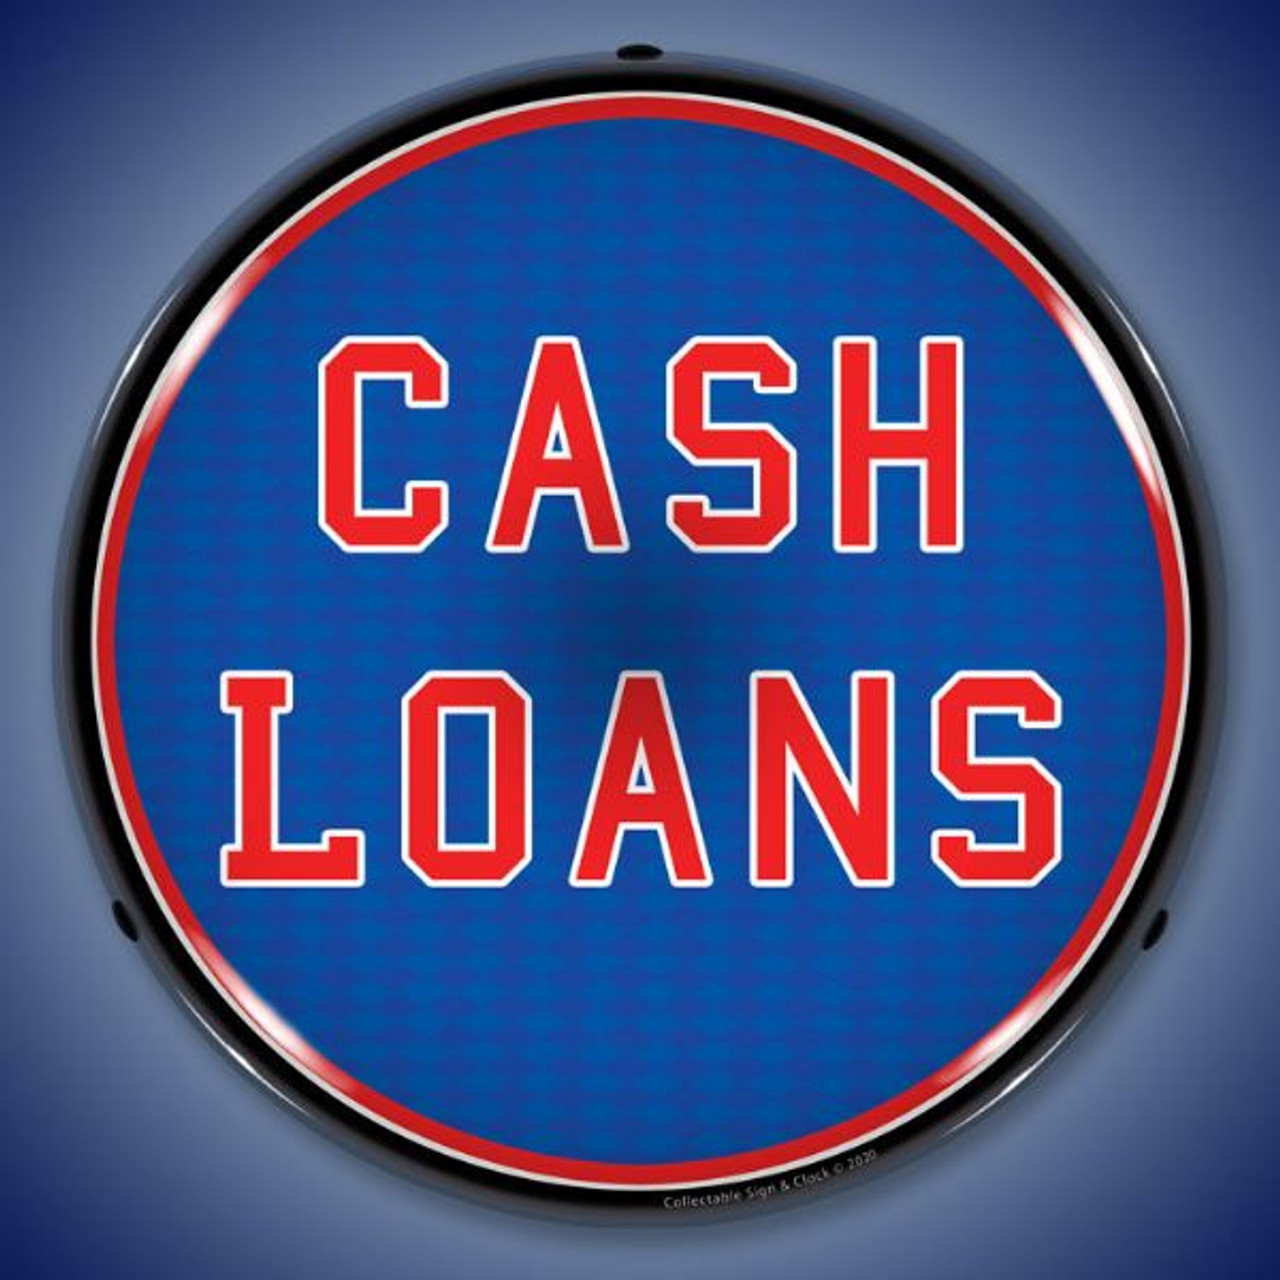 Cash Loans LED Lighted Business Sign 14 x 14 Inches